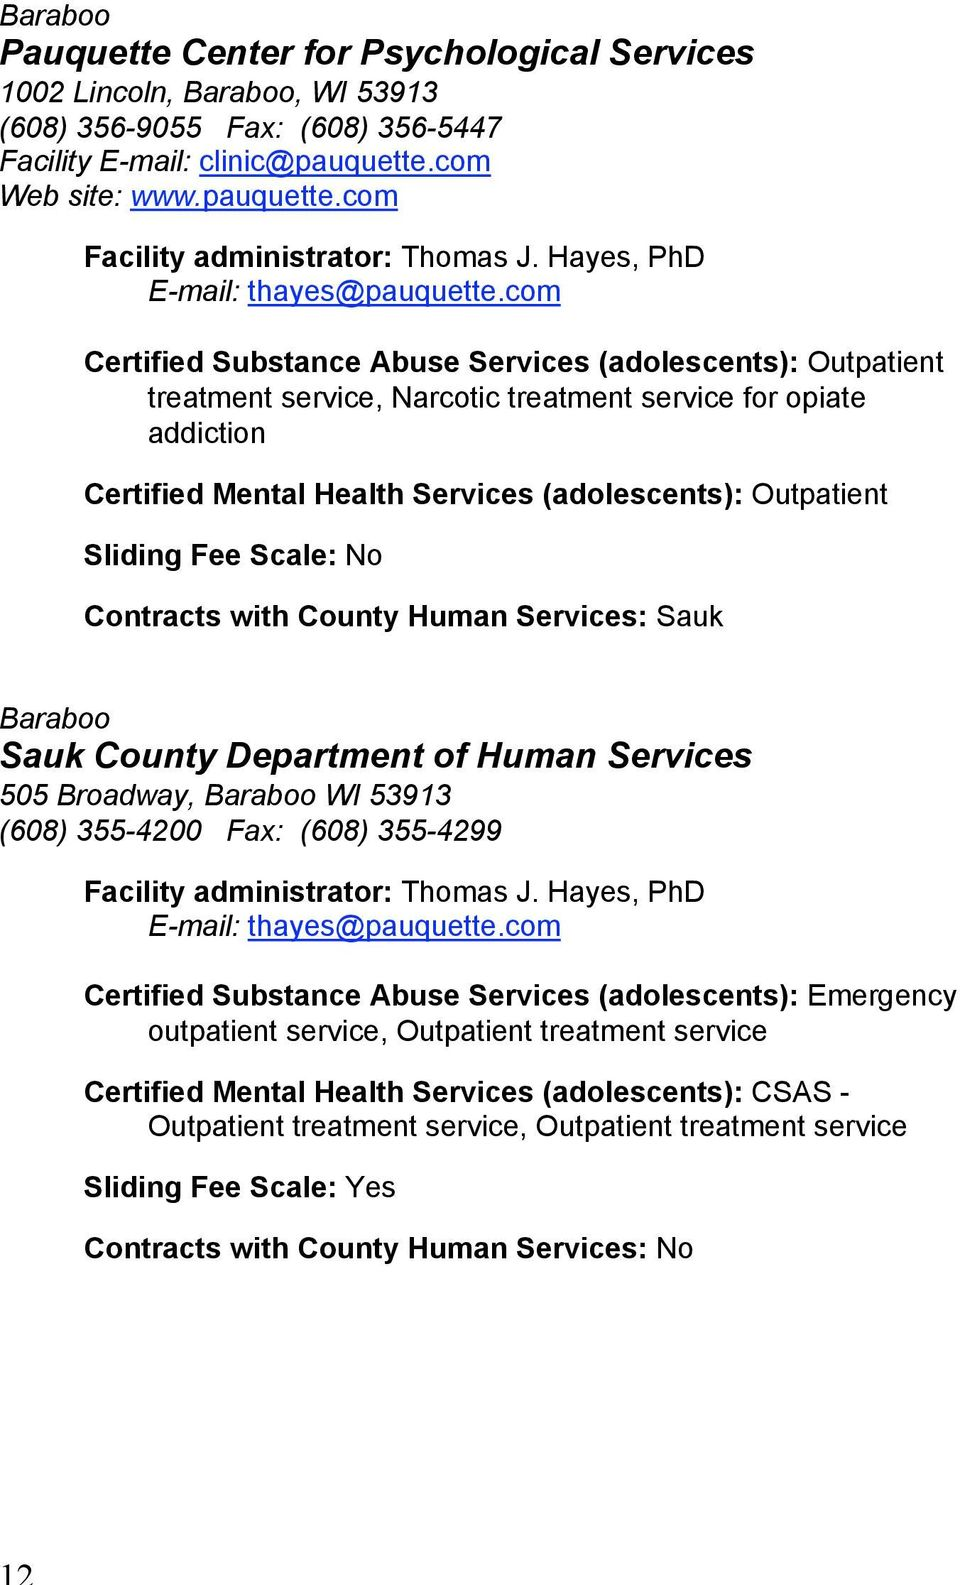 com, Narcotic for opiate addiction Certified Mental Health Services (adolescents): Outpatient Sliding Fee Scale: No Contracts with County Human Services: Sauk Baraboo Sauk County Department of